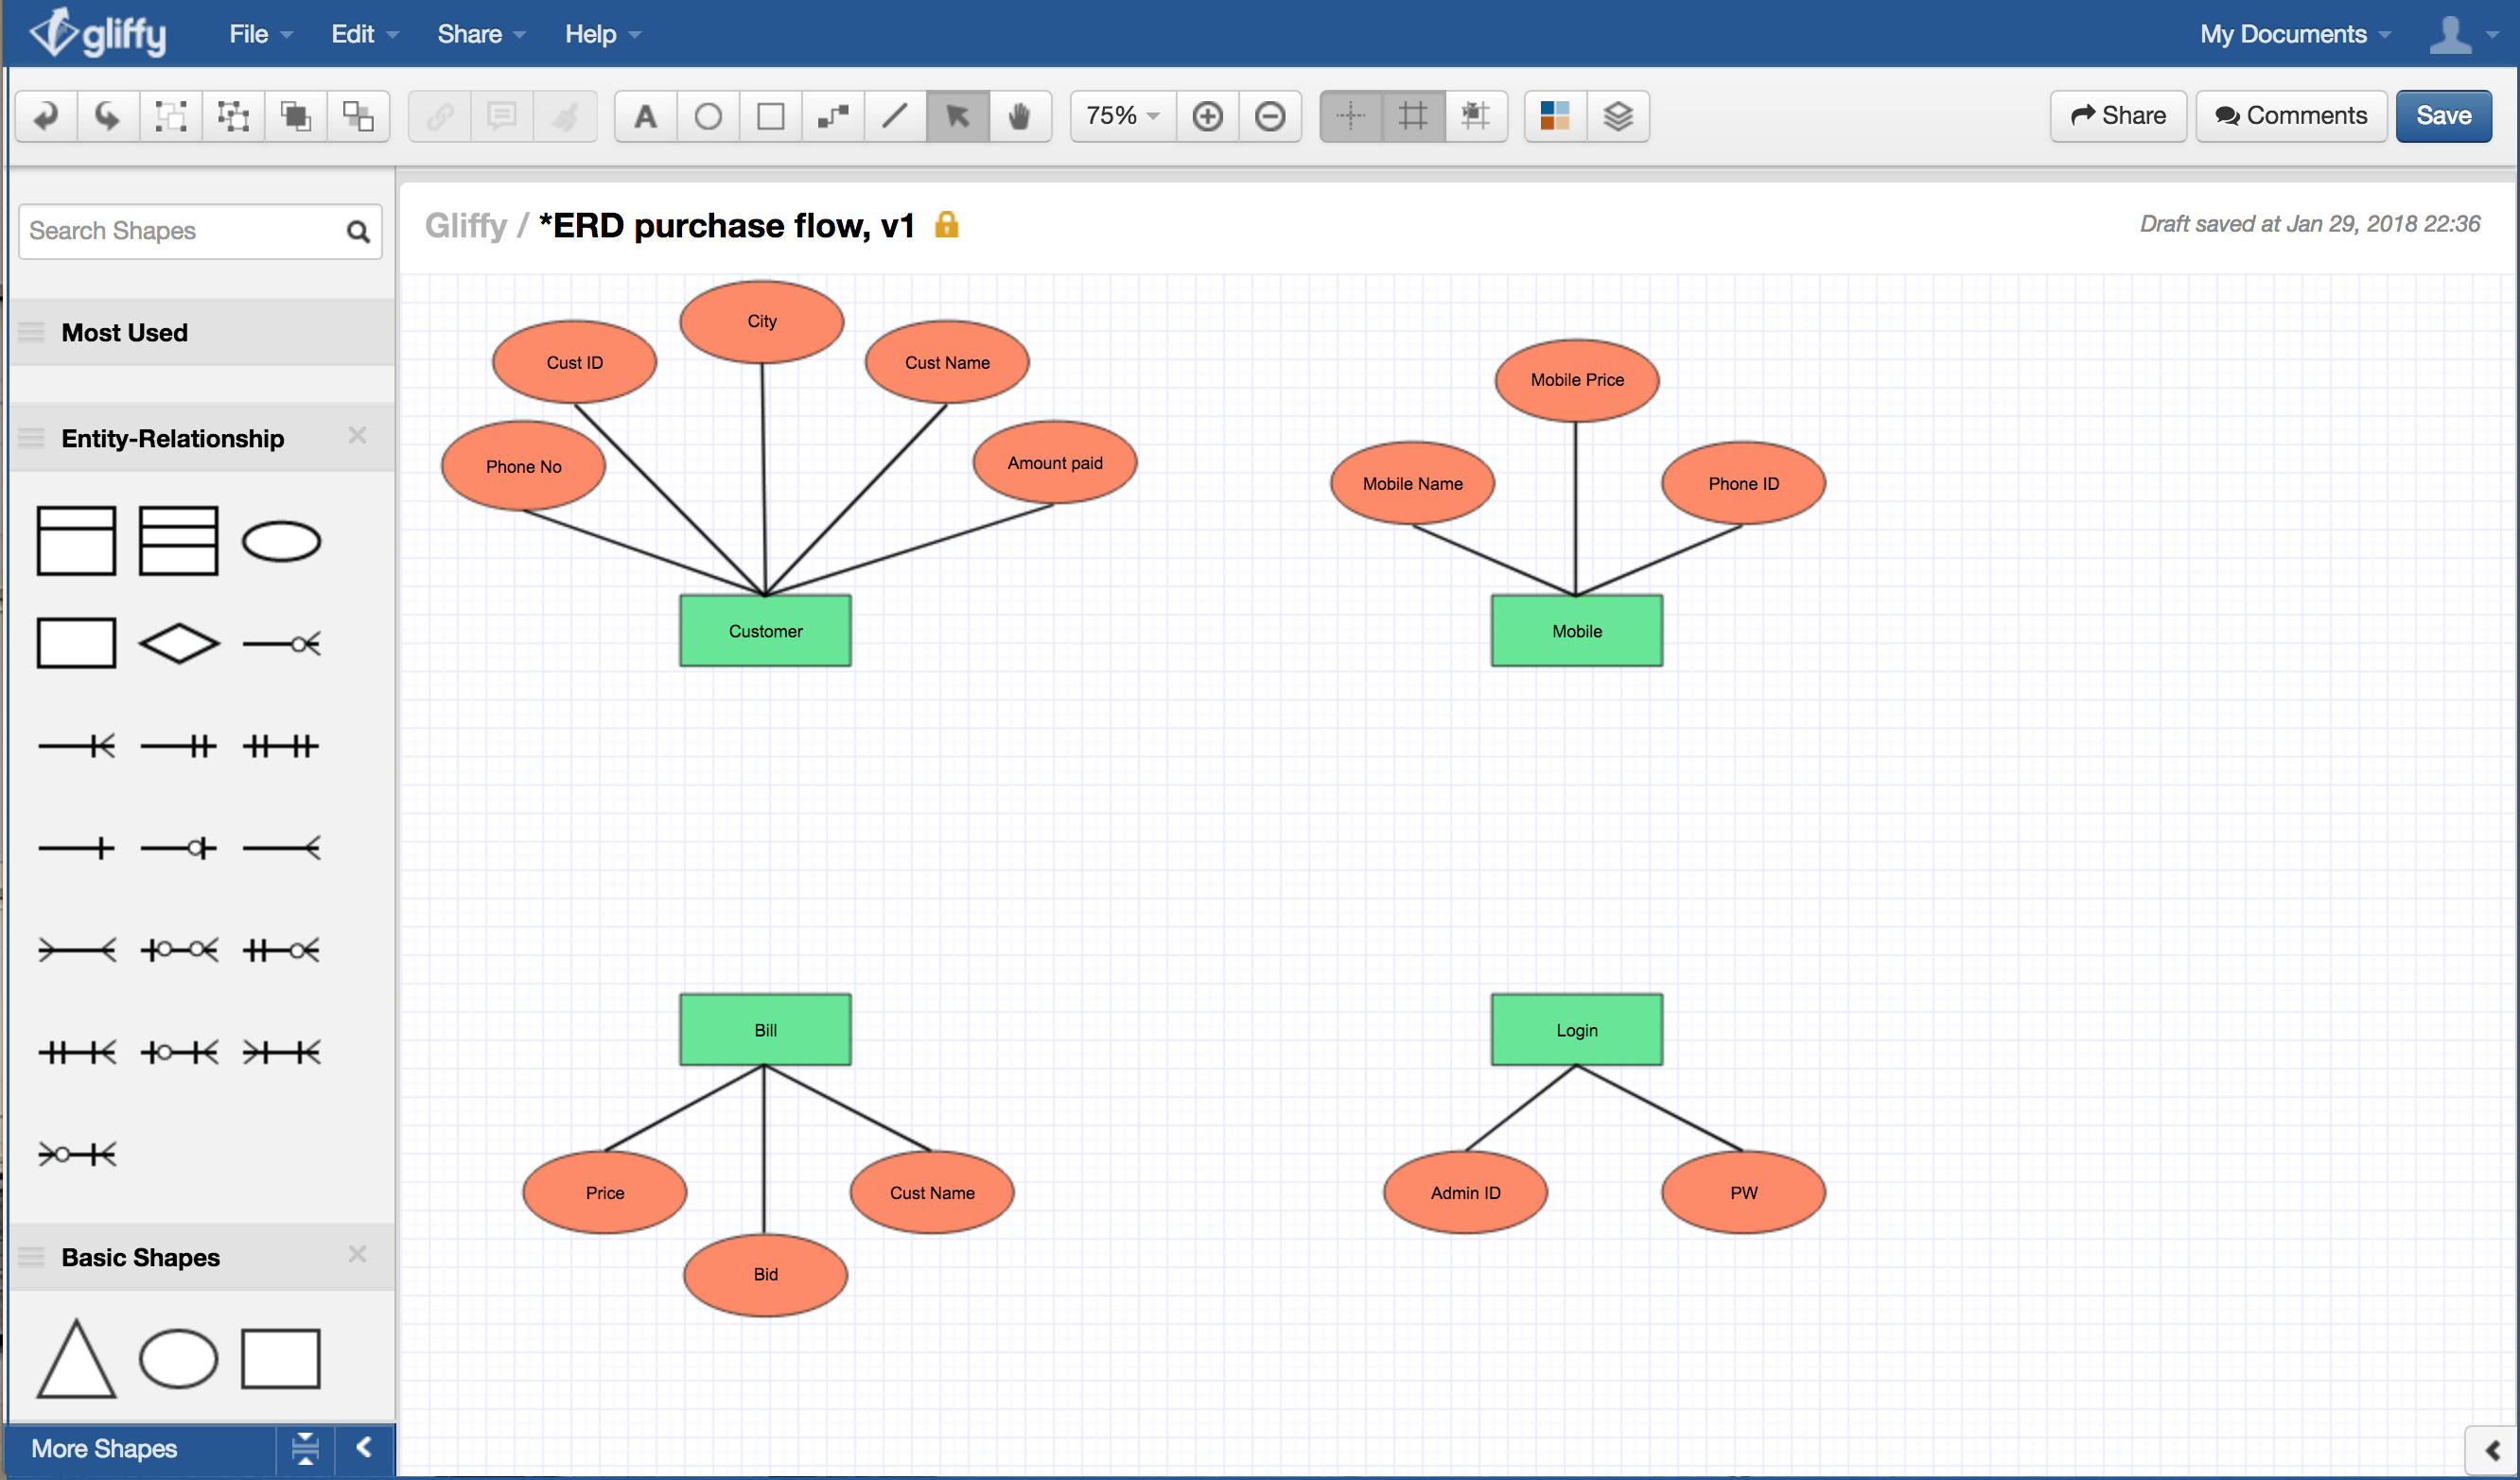 How To Draw An Entity-Relationship Diagram within Draw Entity Relationship Diagram